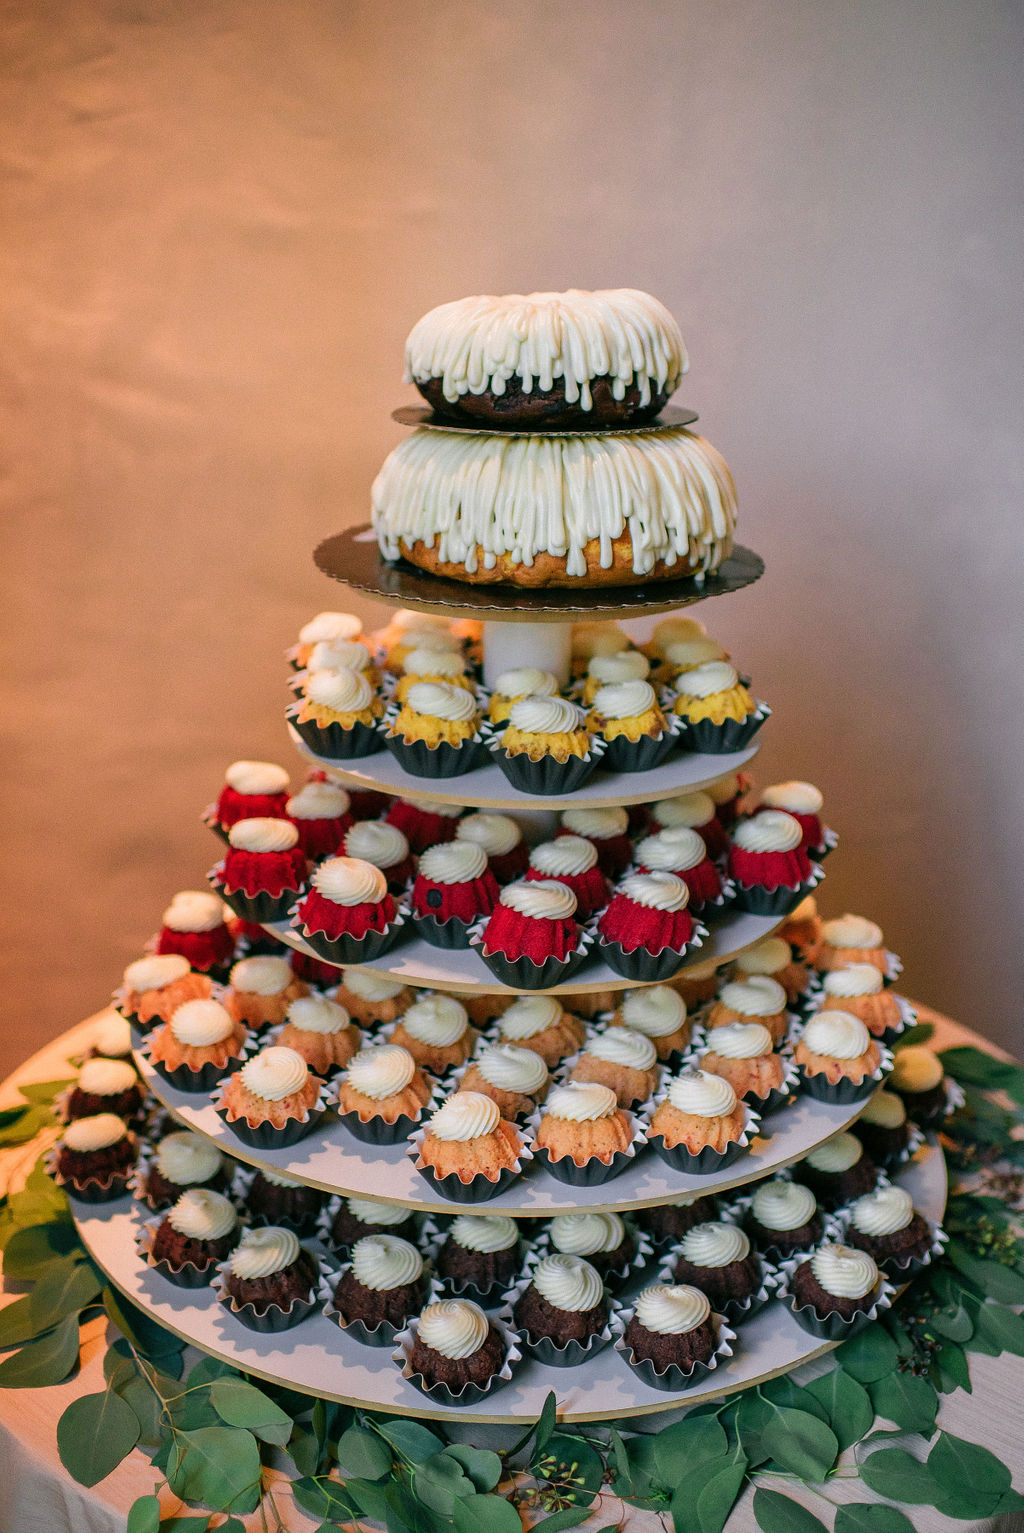 Nothing Bundt cakes wedding cake for Nashville wedding featured on Nashville Bride Guide